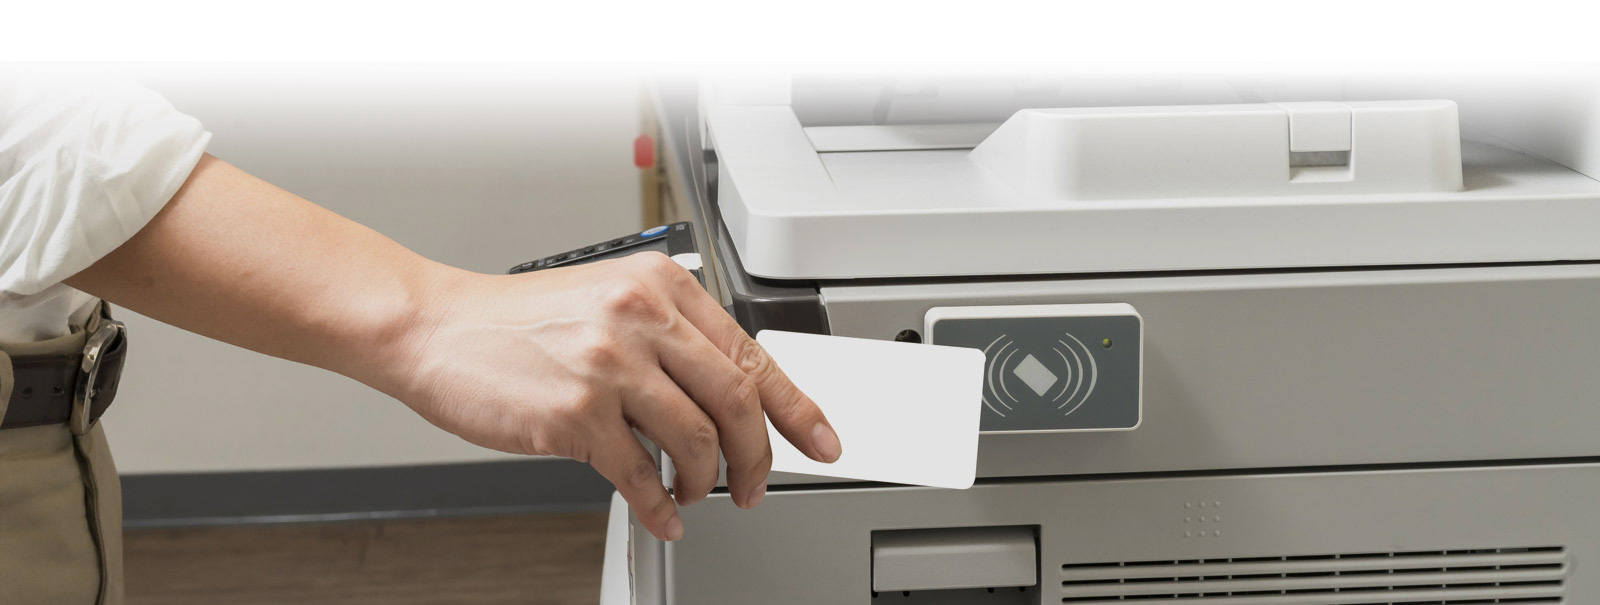 National distributor of card printers and accessories